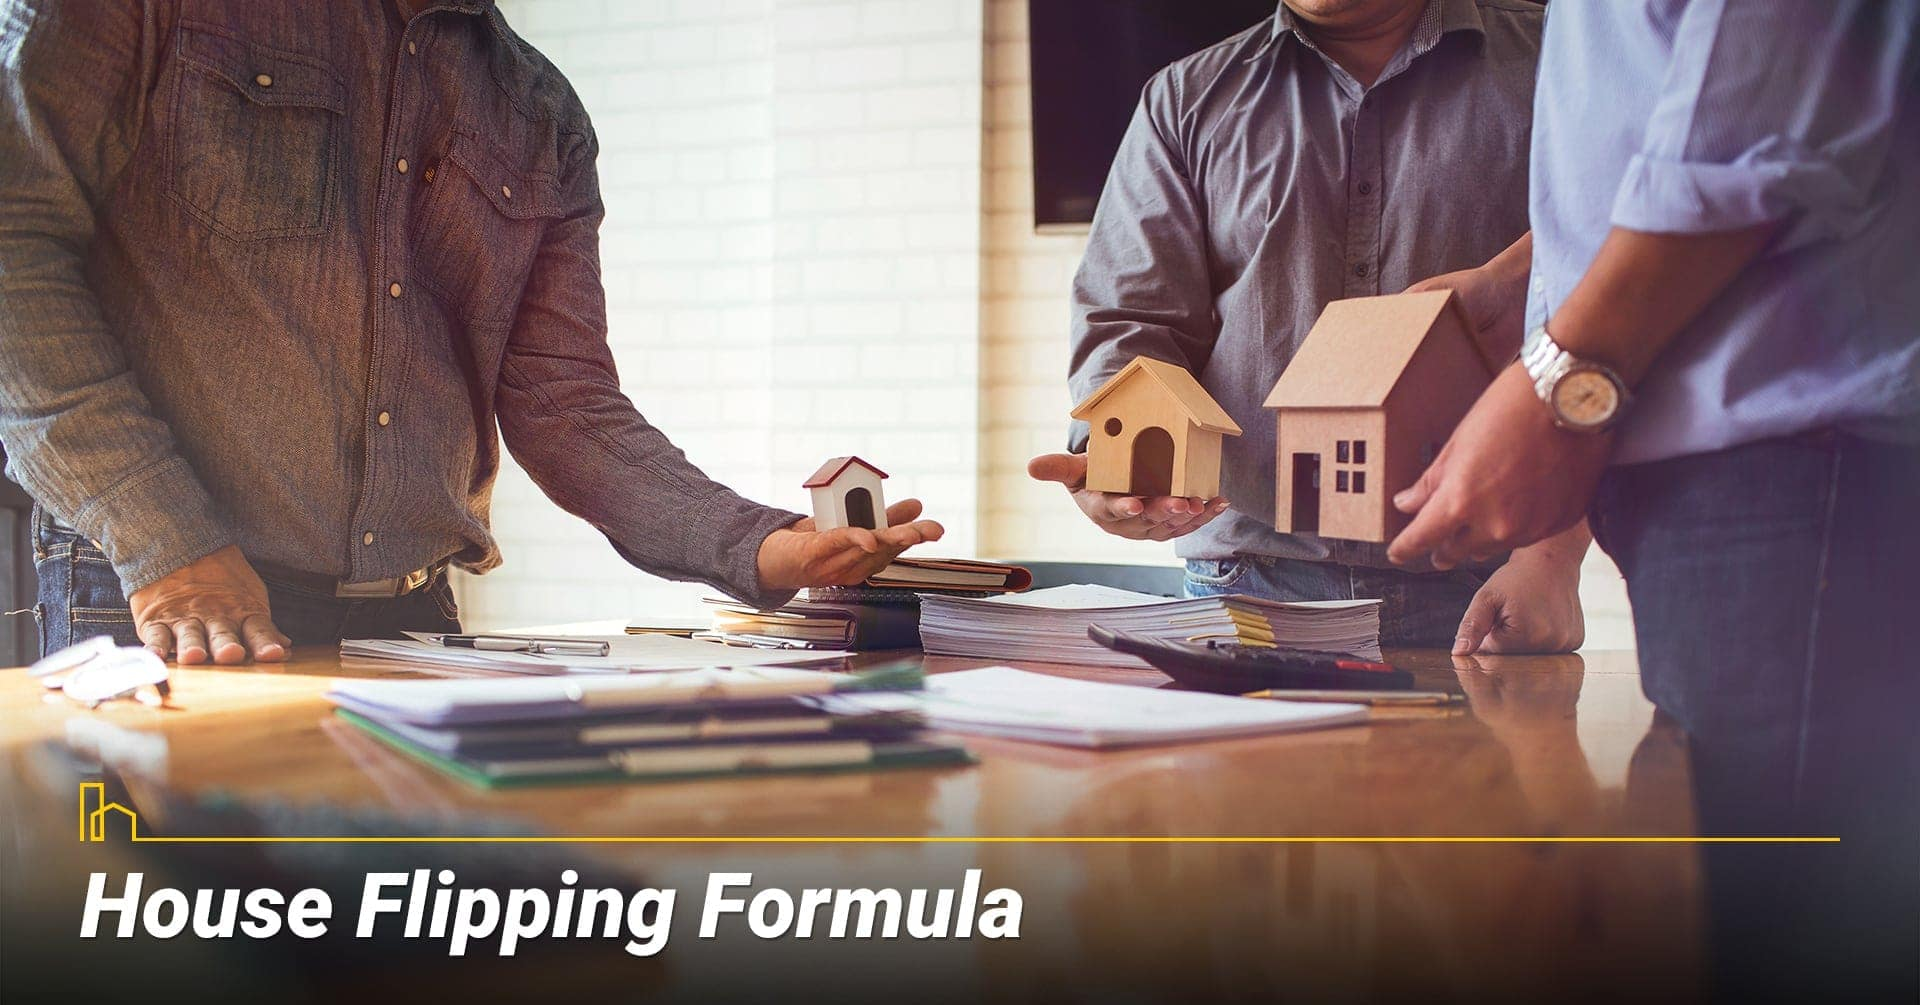 House Flipping Formula, follow steps to flip a house